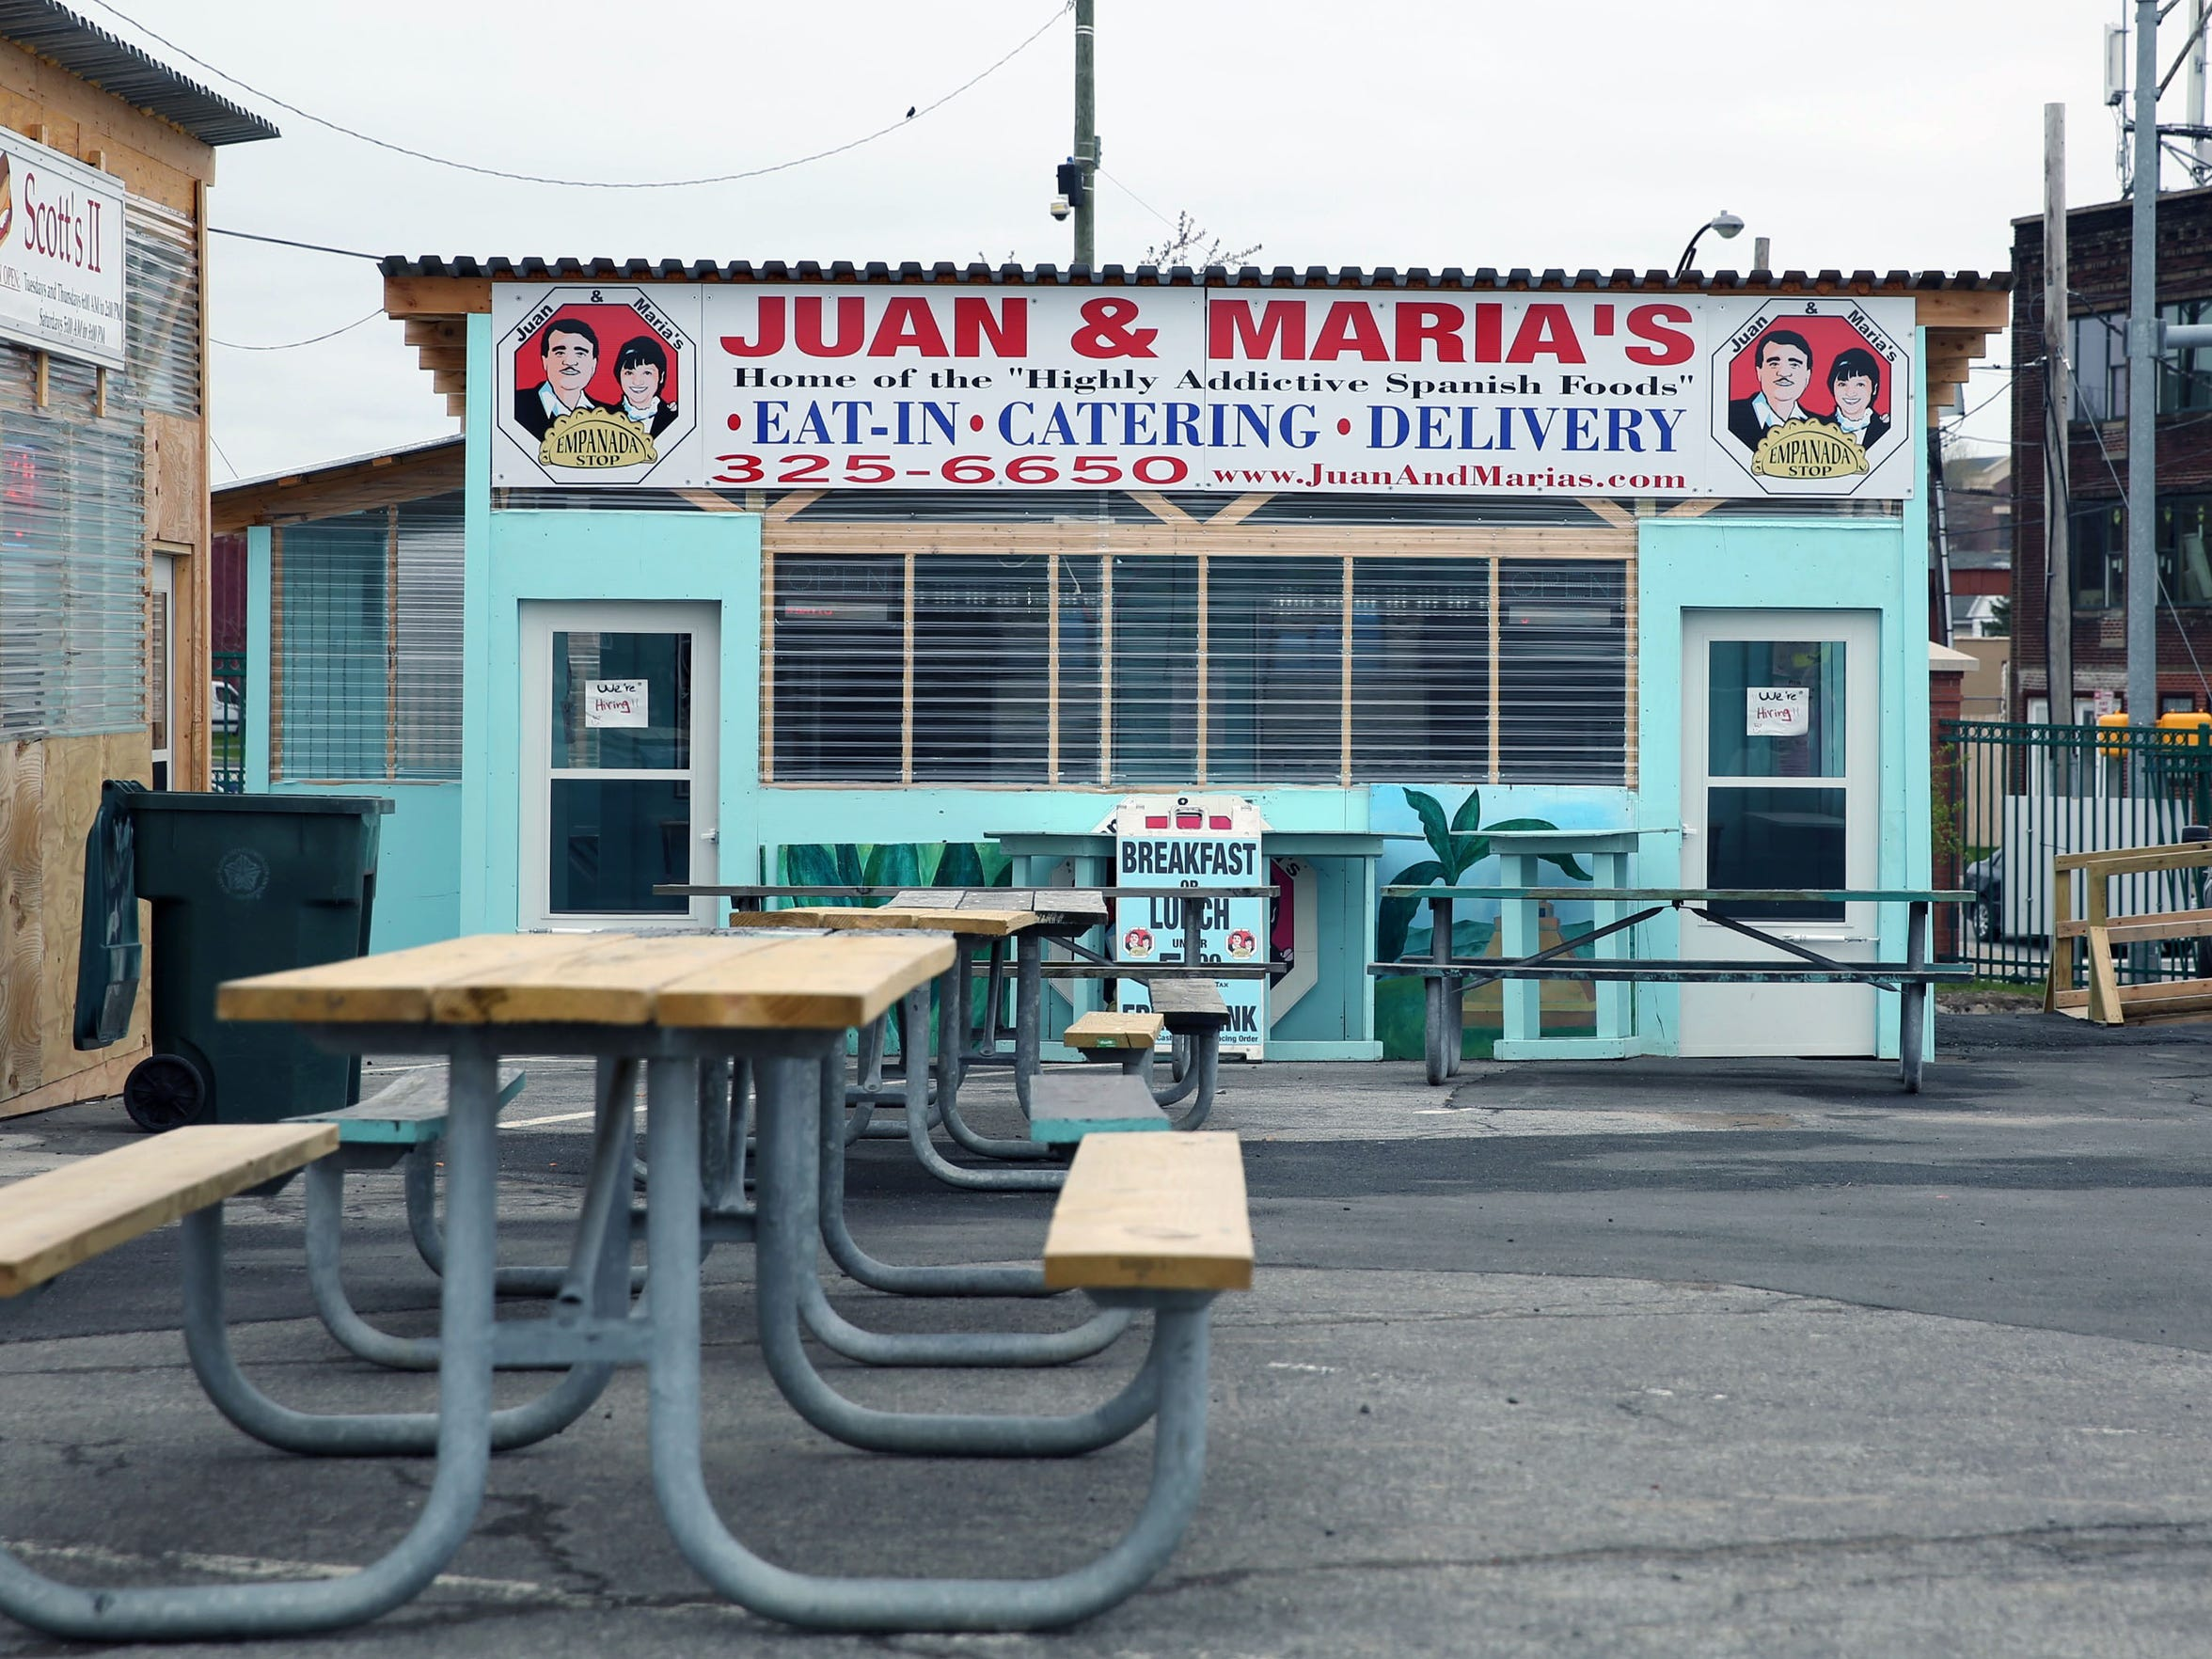 Juan & Maria's Empanada Stop is one of the food vendors housed in converted shipping containers at the Rochester Public Market.